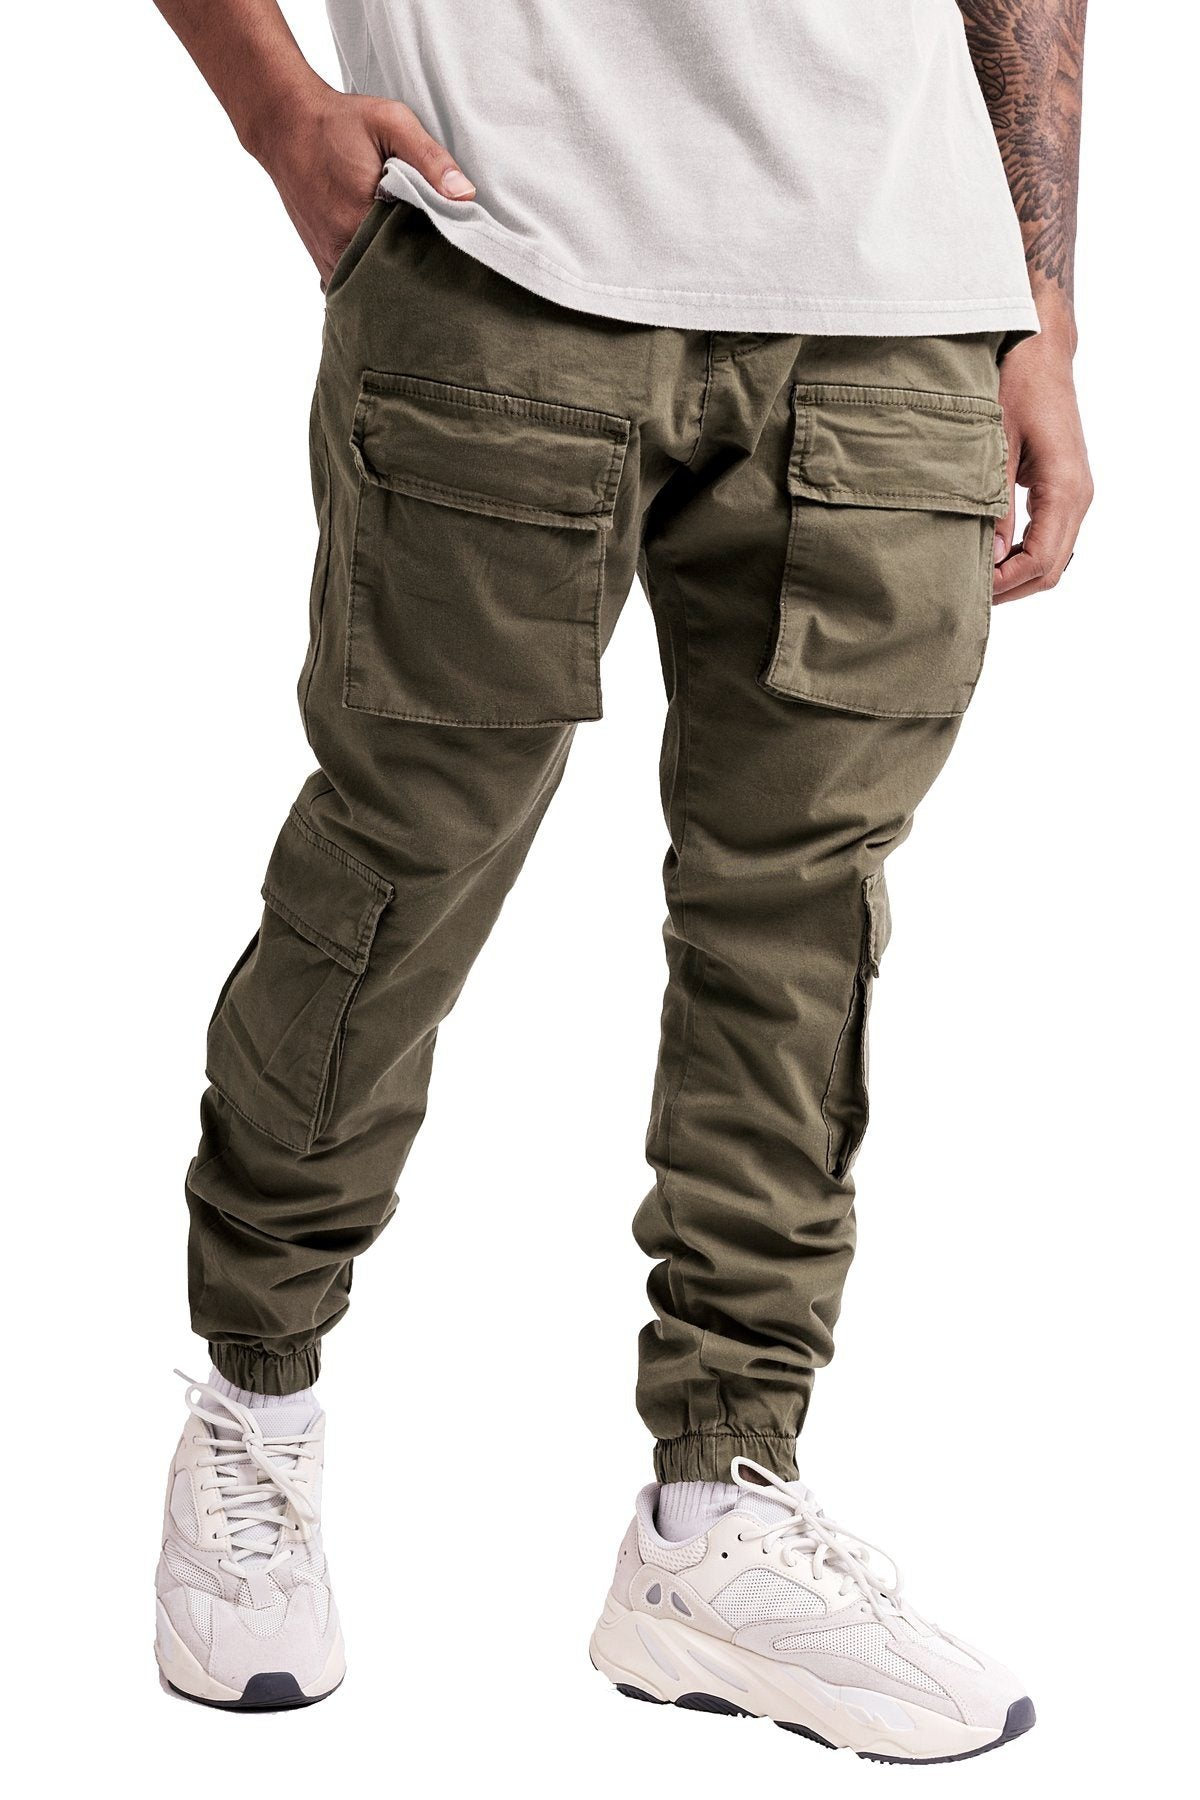 Lyon Cargo Pants Olive - PEGADOR - Dominate the Hype